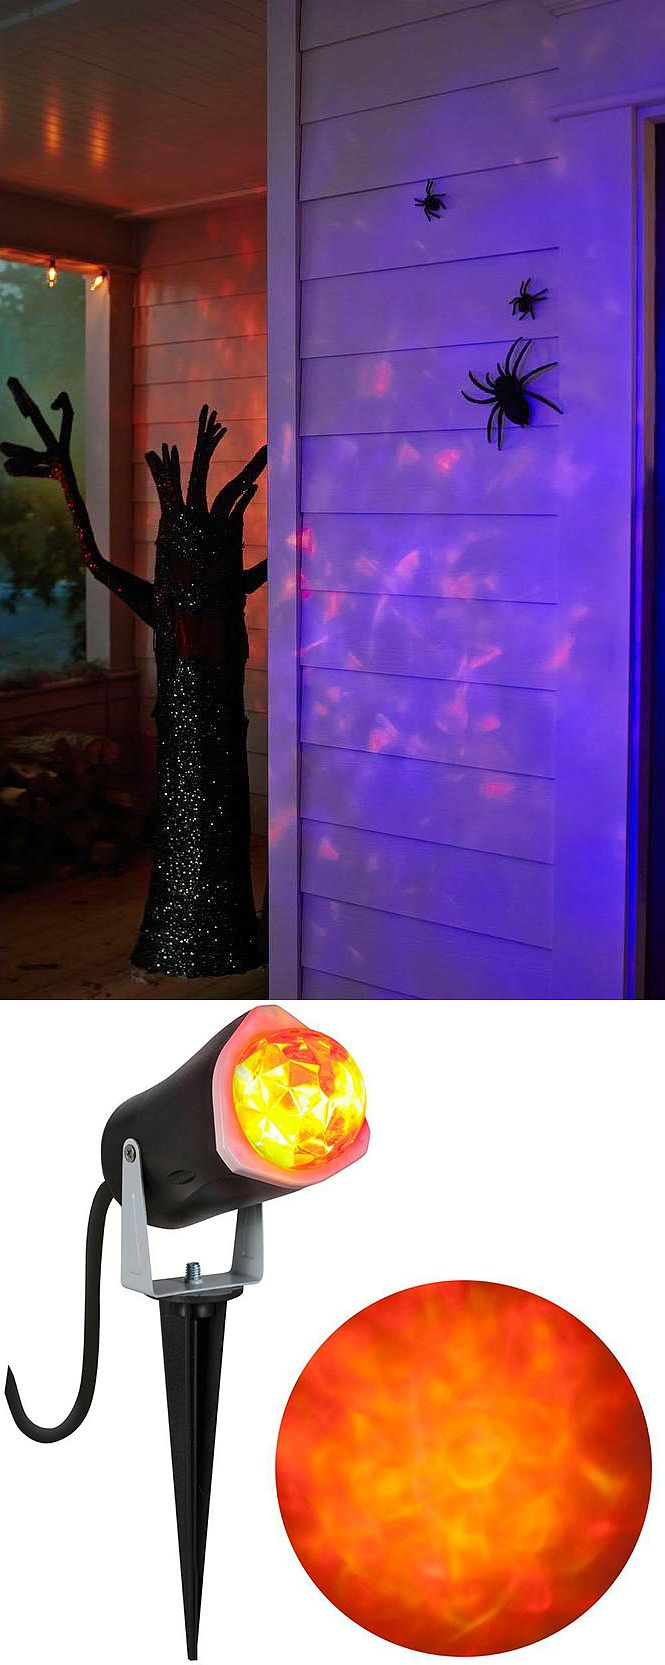 bright special lighting honor dlm. Enhance Your Halloween Decorating With An Eerie, Swirling Light Show. This Outdoor Projection Shines Bright Special Lighting Honor Dlm A